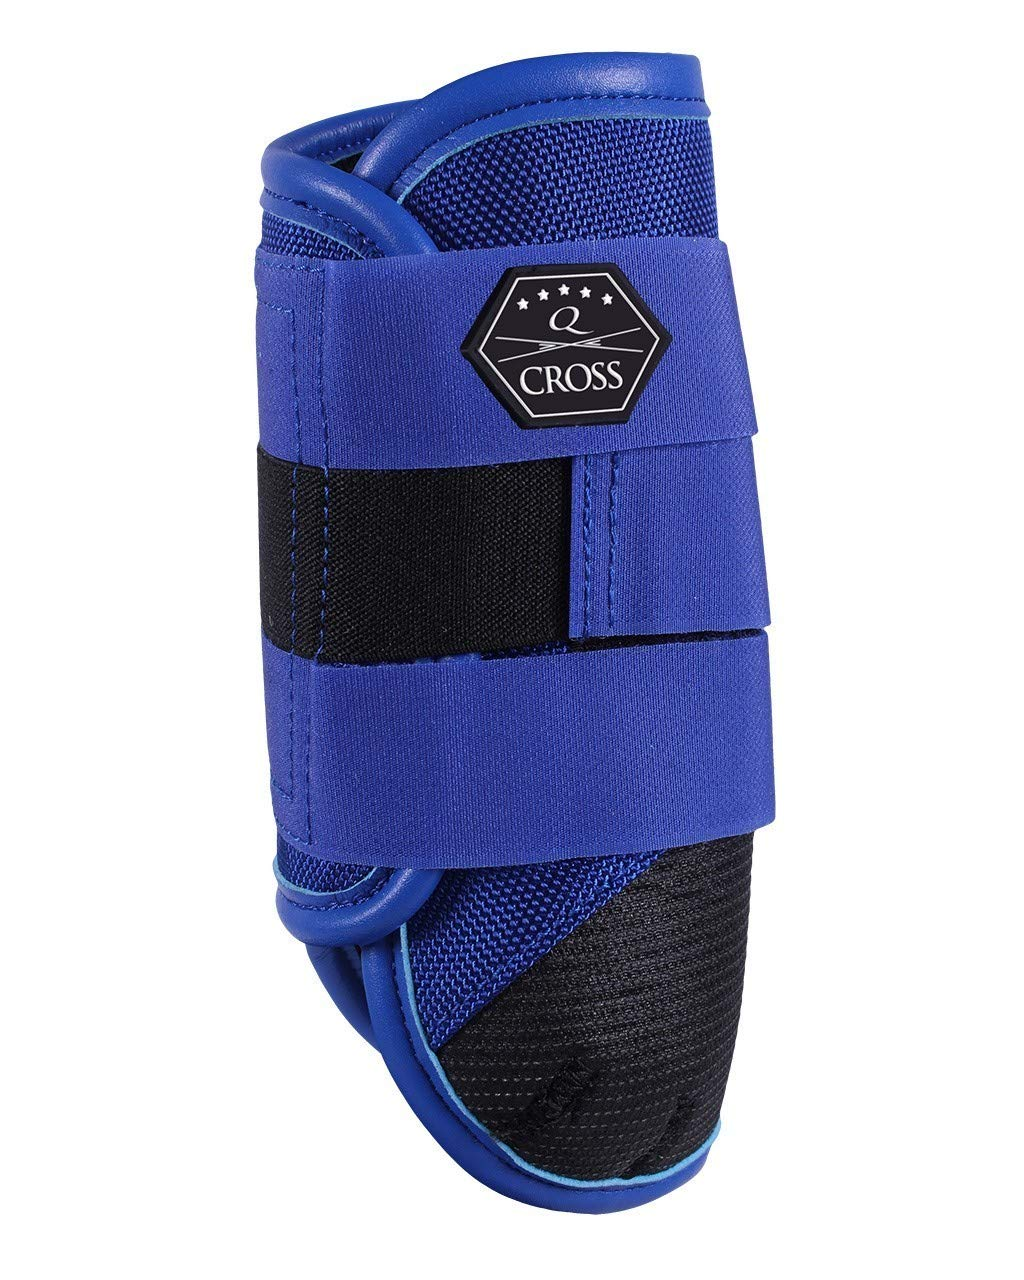 QHP Front Leg Technical Event Boots Medium Royal bluee